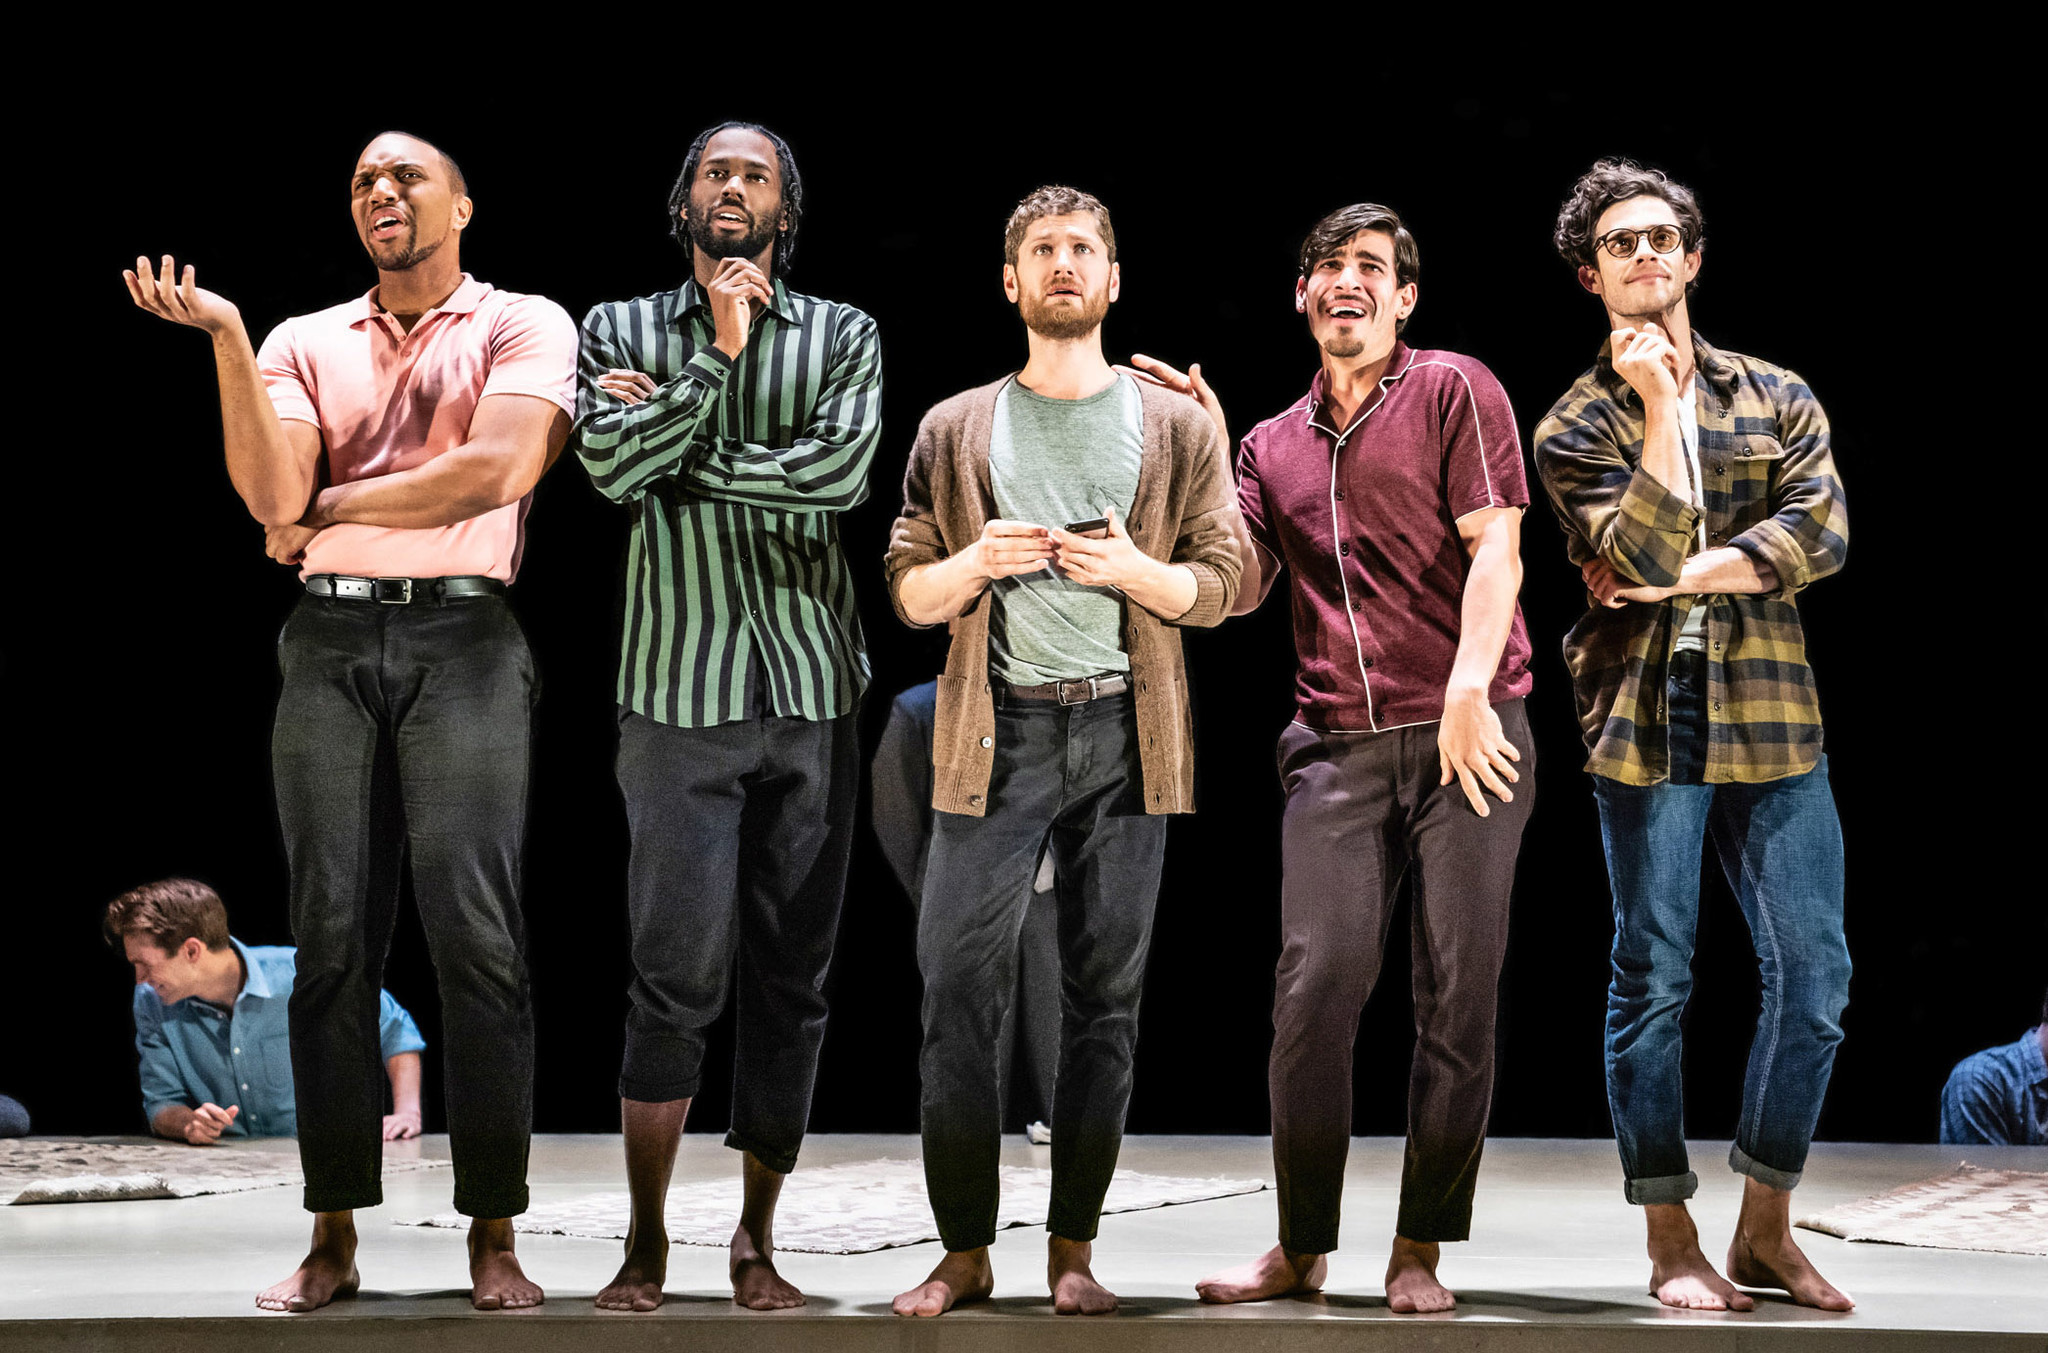 BROADWAY REVIEW: Epic 7-hour play 'The Inheritance is richly-layered, moving AIDS drama